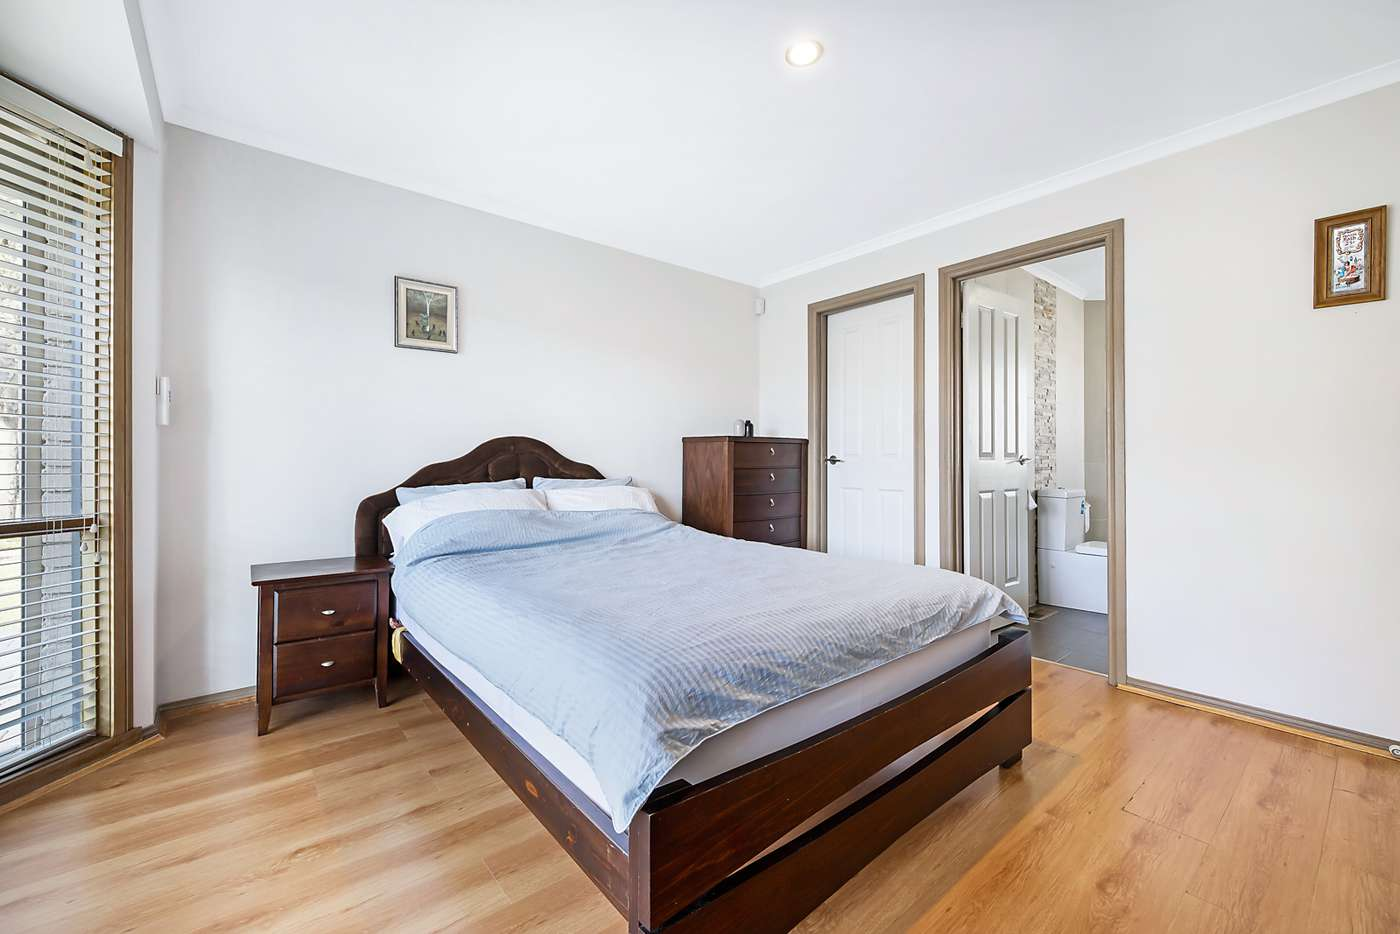 Sixth view of Homely house listing, 61 Taylors Lane, Rowville VIC 3178